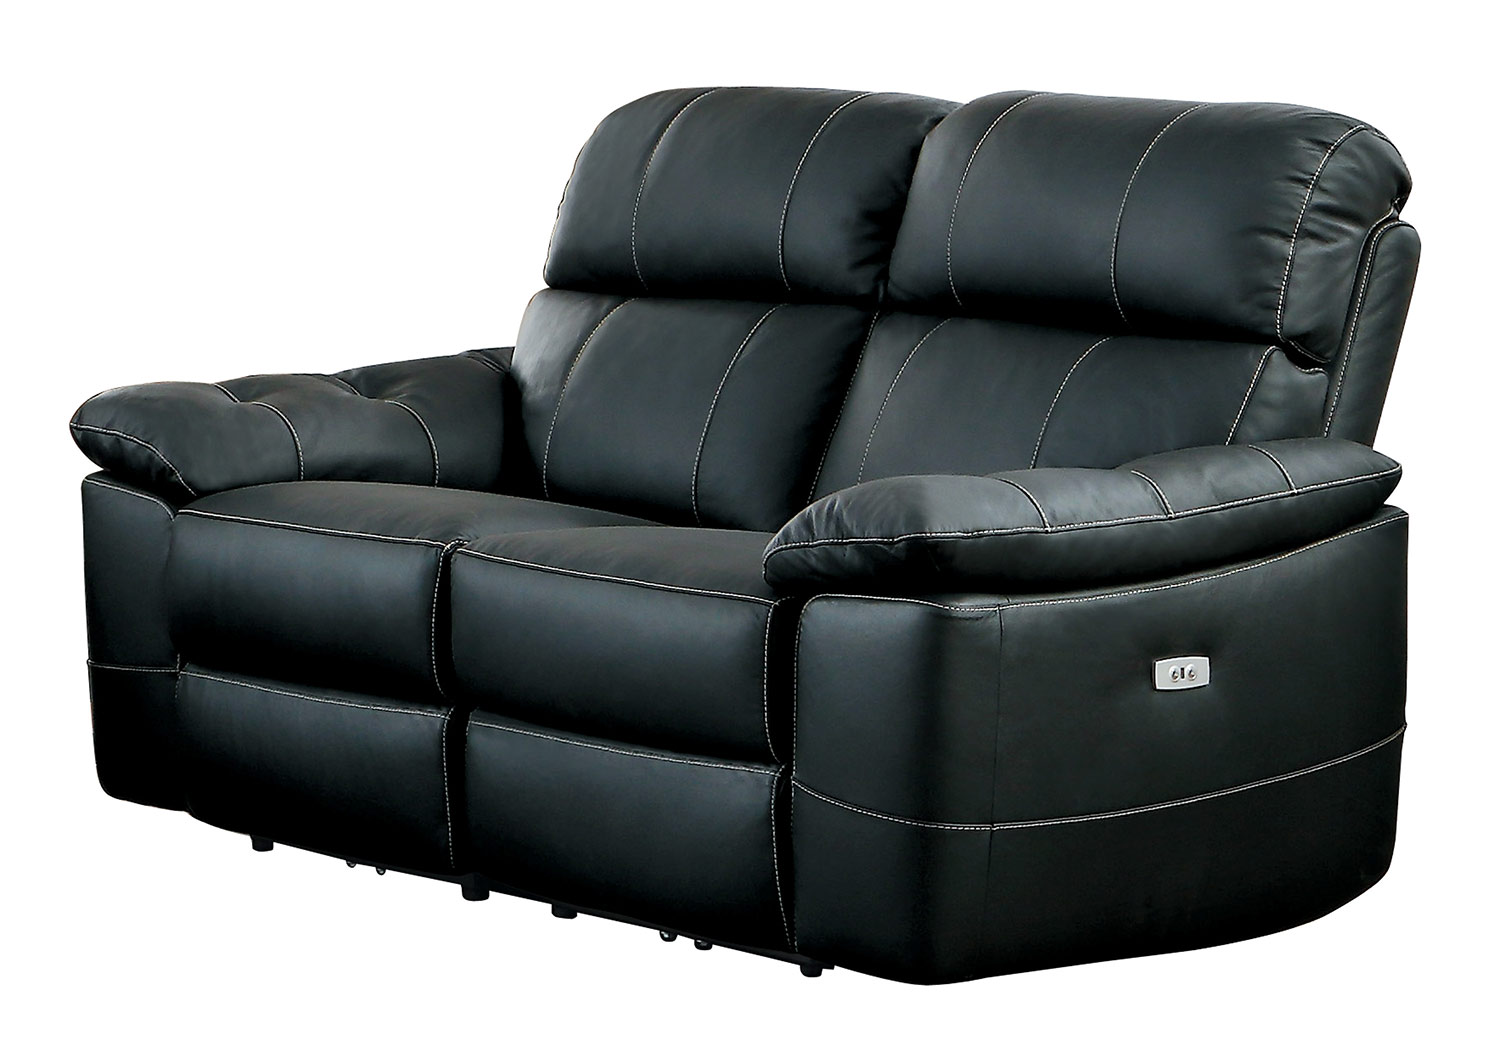 Homelegance Nicasio Power Double Reclining Love Seat - Black Leather